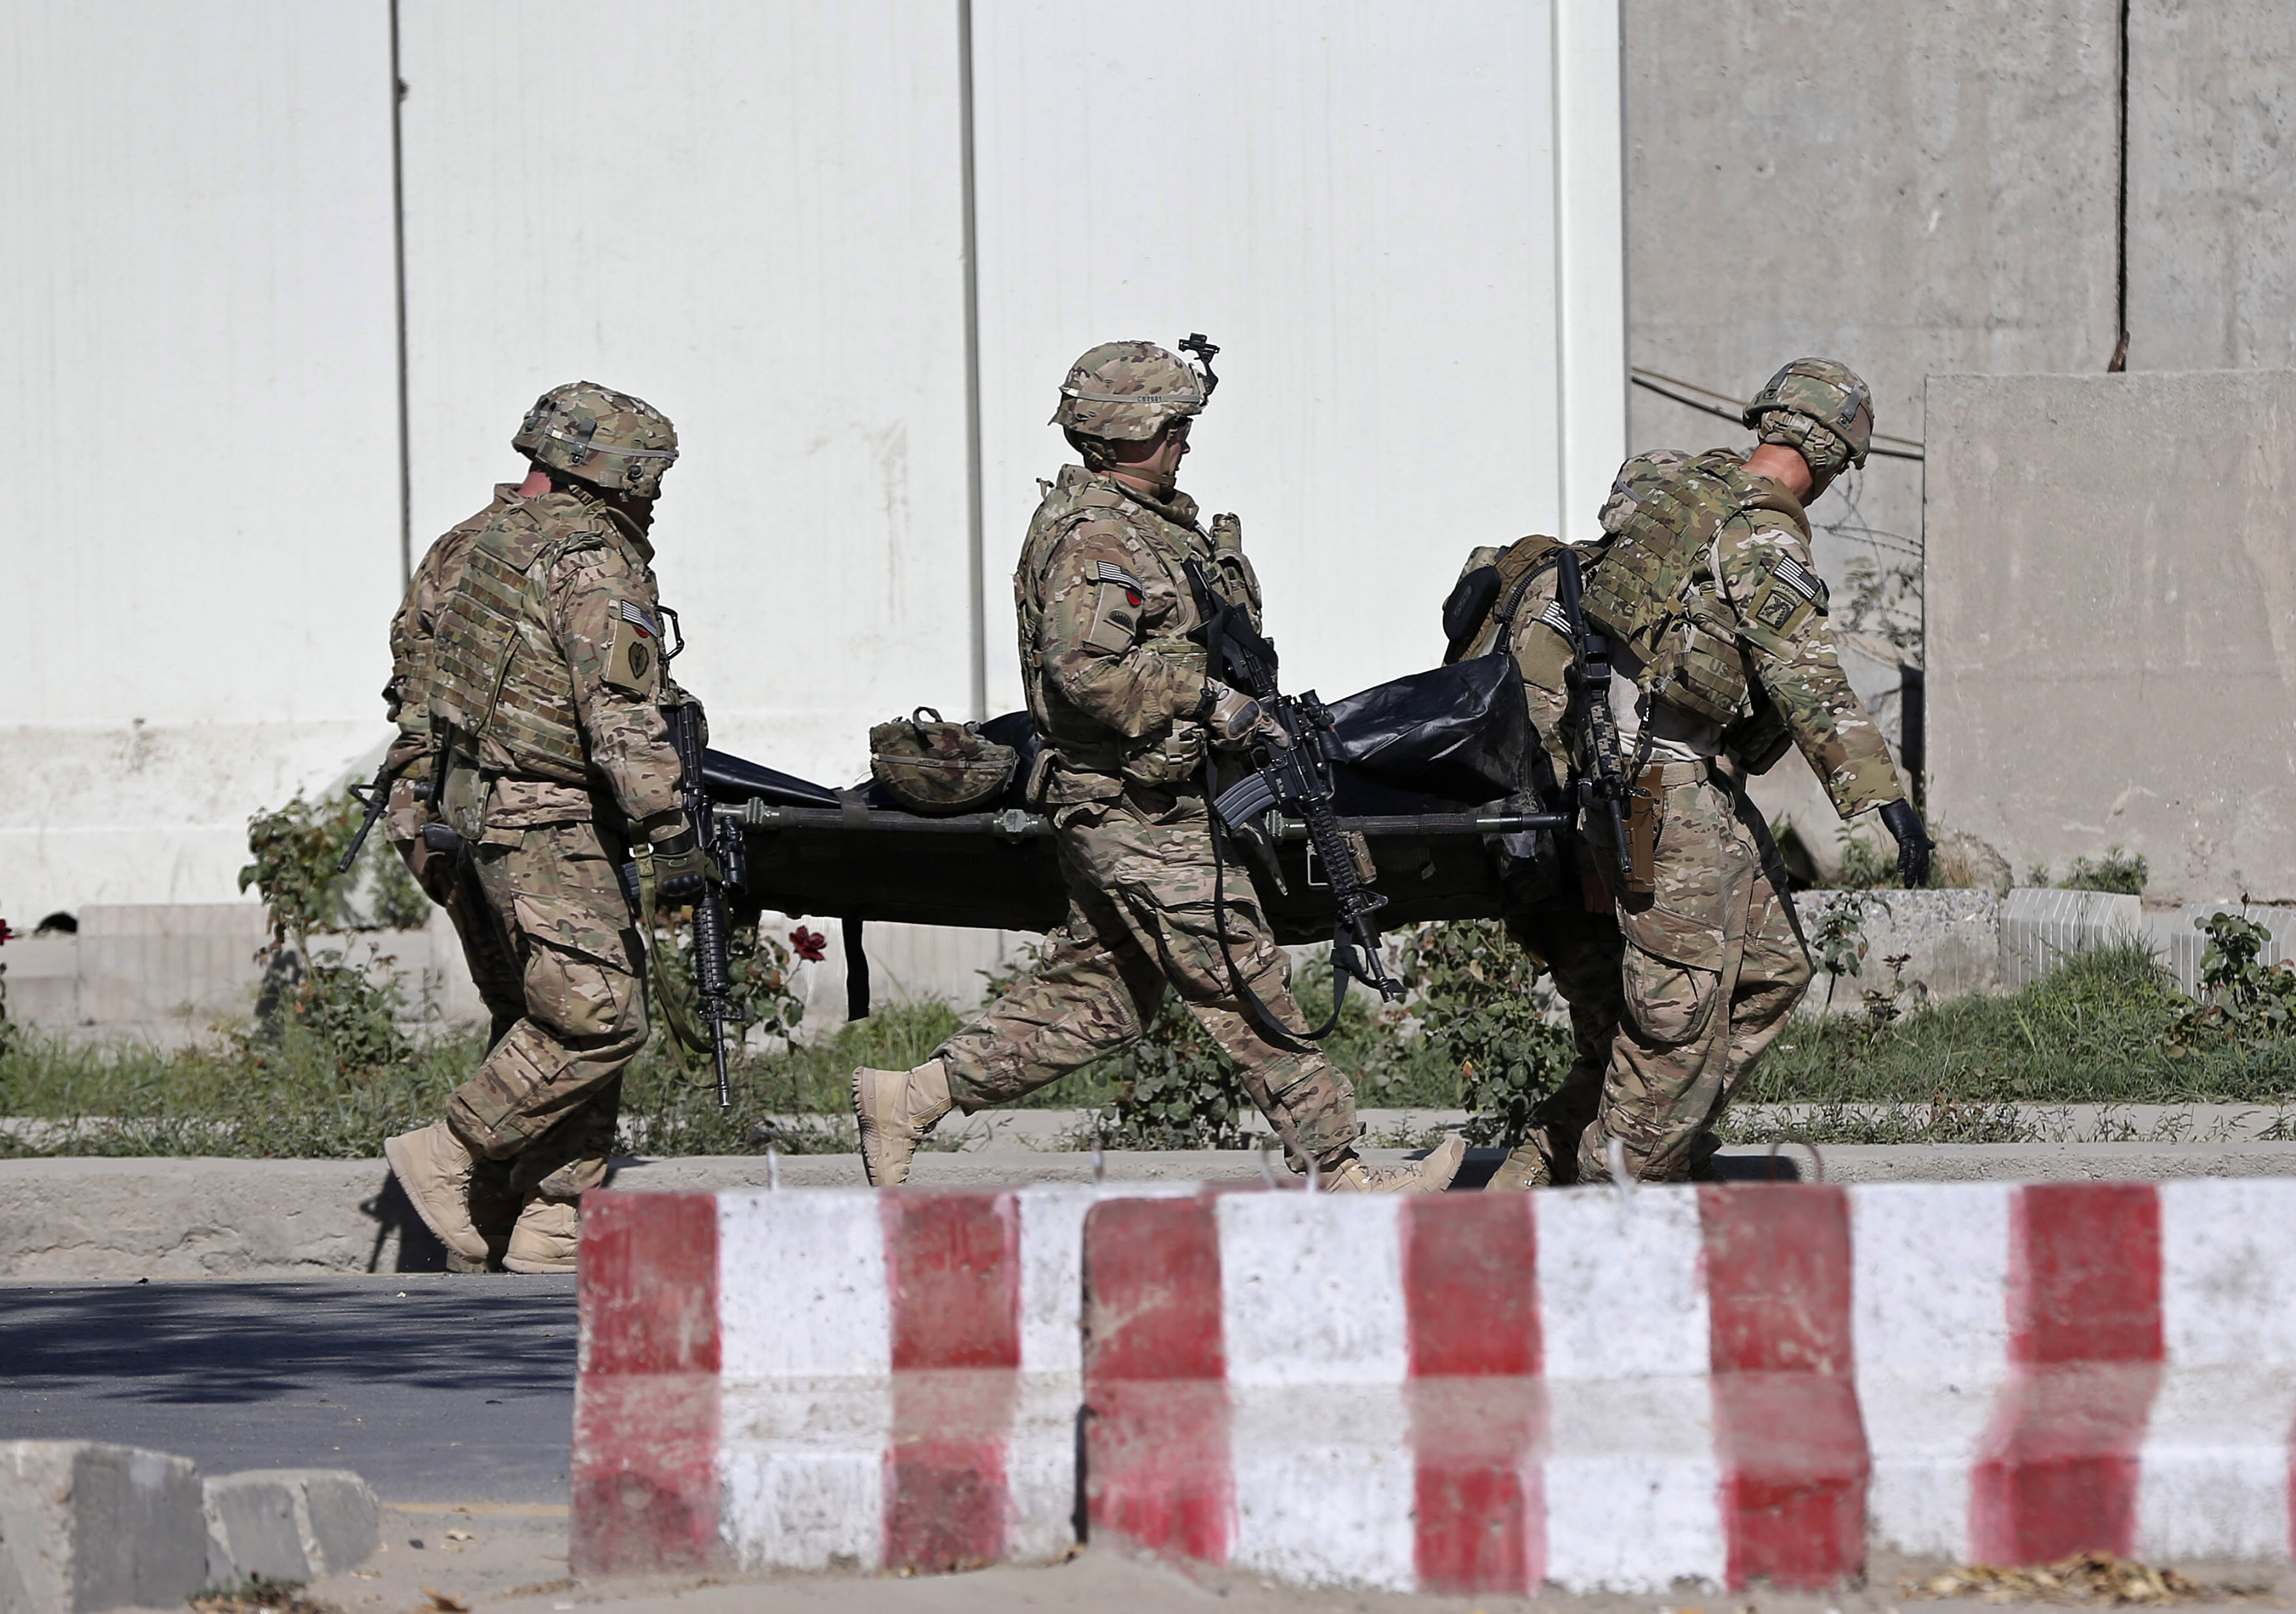 U.S. troops carry the dead body of a member of an international troop at the site of suicide attack in Kabul September 16, 2014.